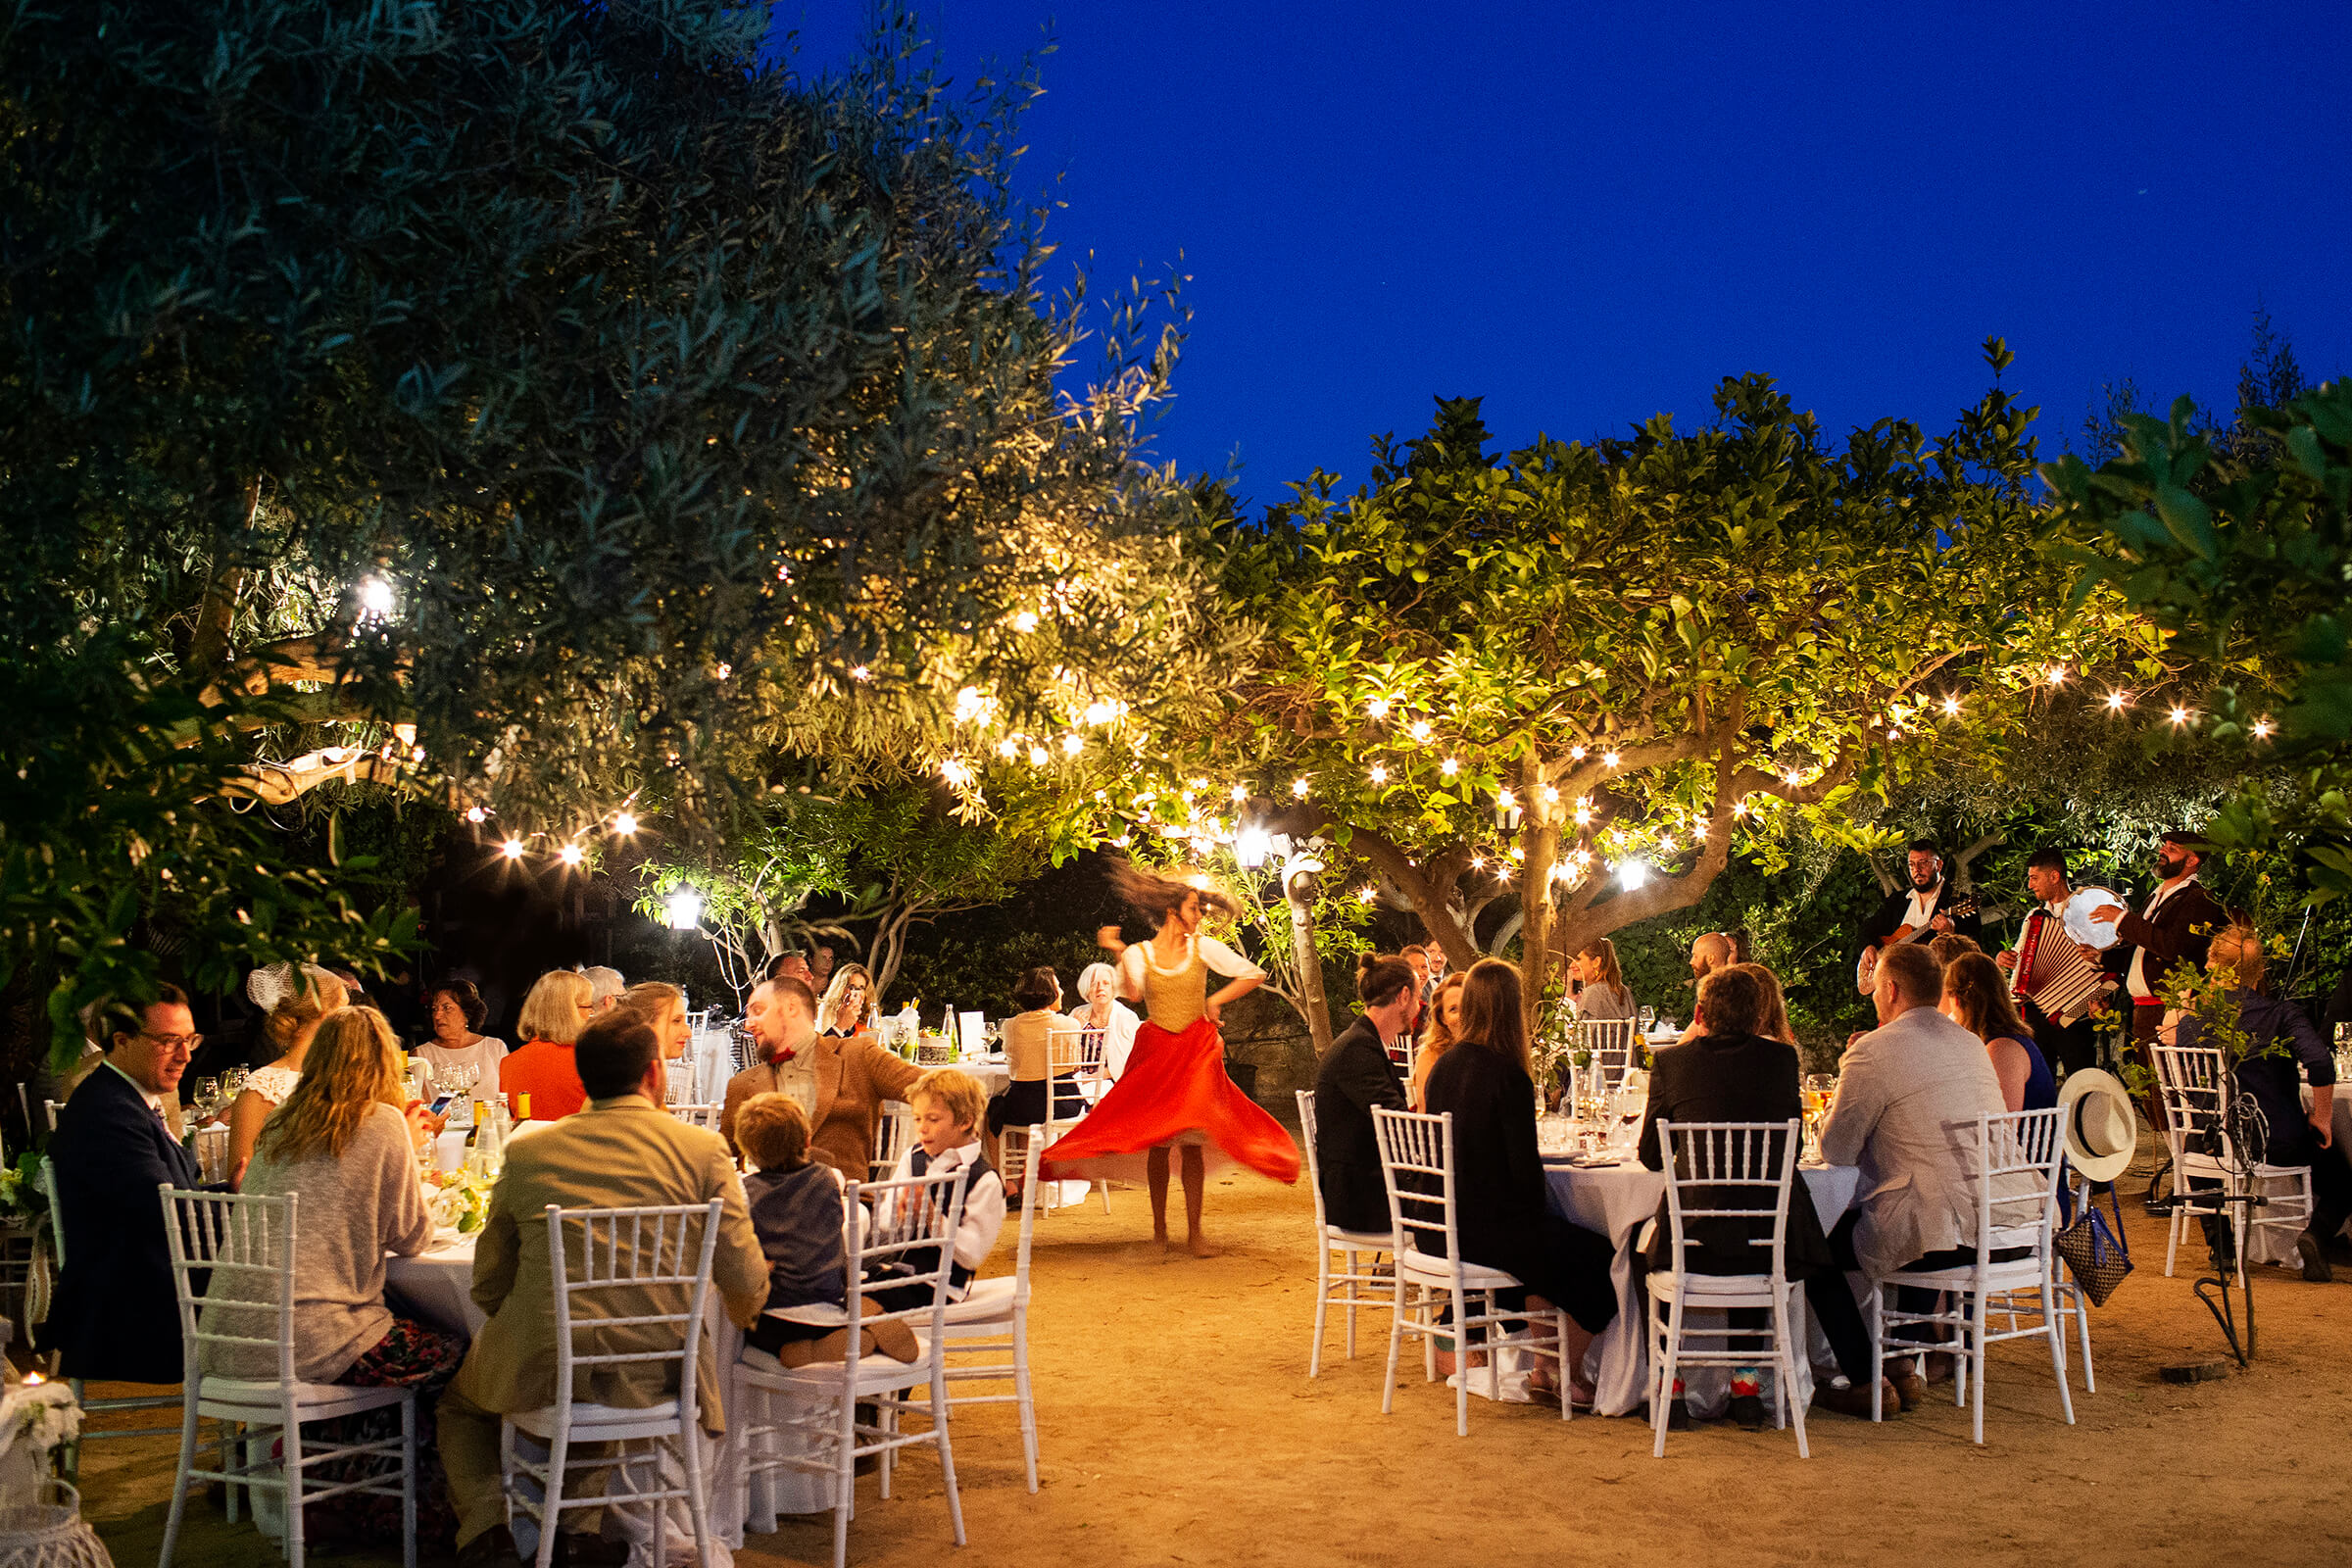 Reception guests enjoy dancer under lighted trees - photo by Nino Lombardo Photographer